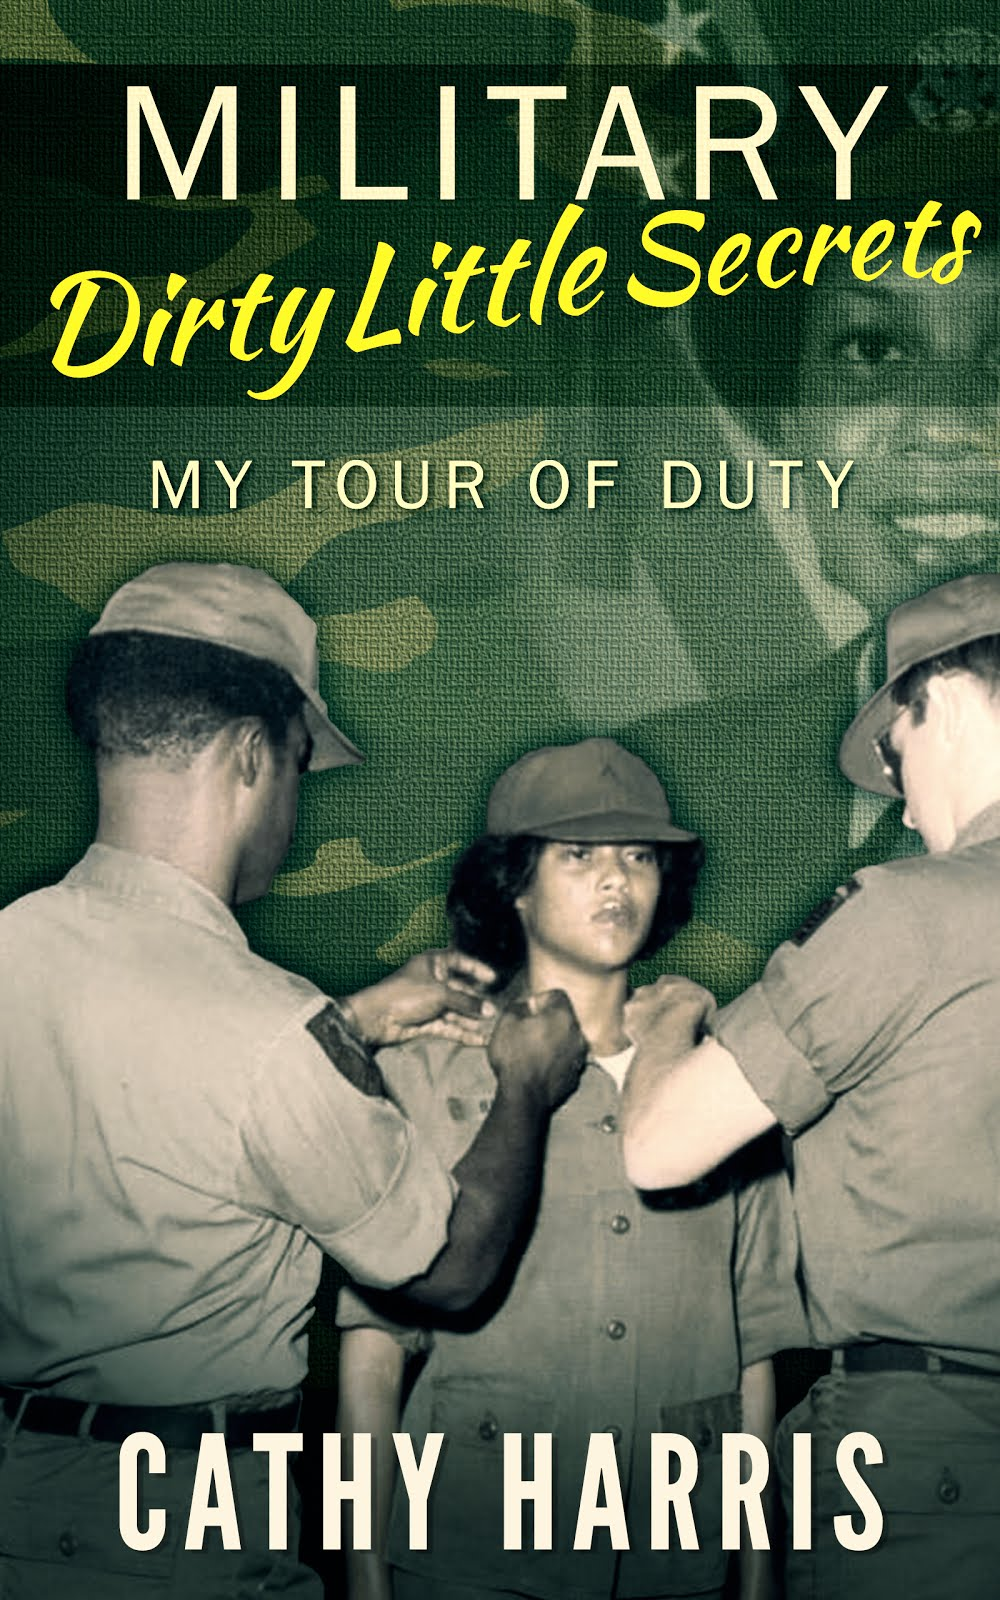 Military Dirty Little Secrets